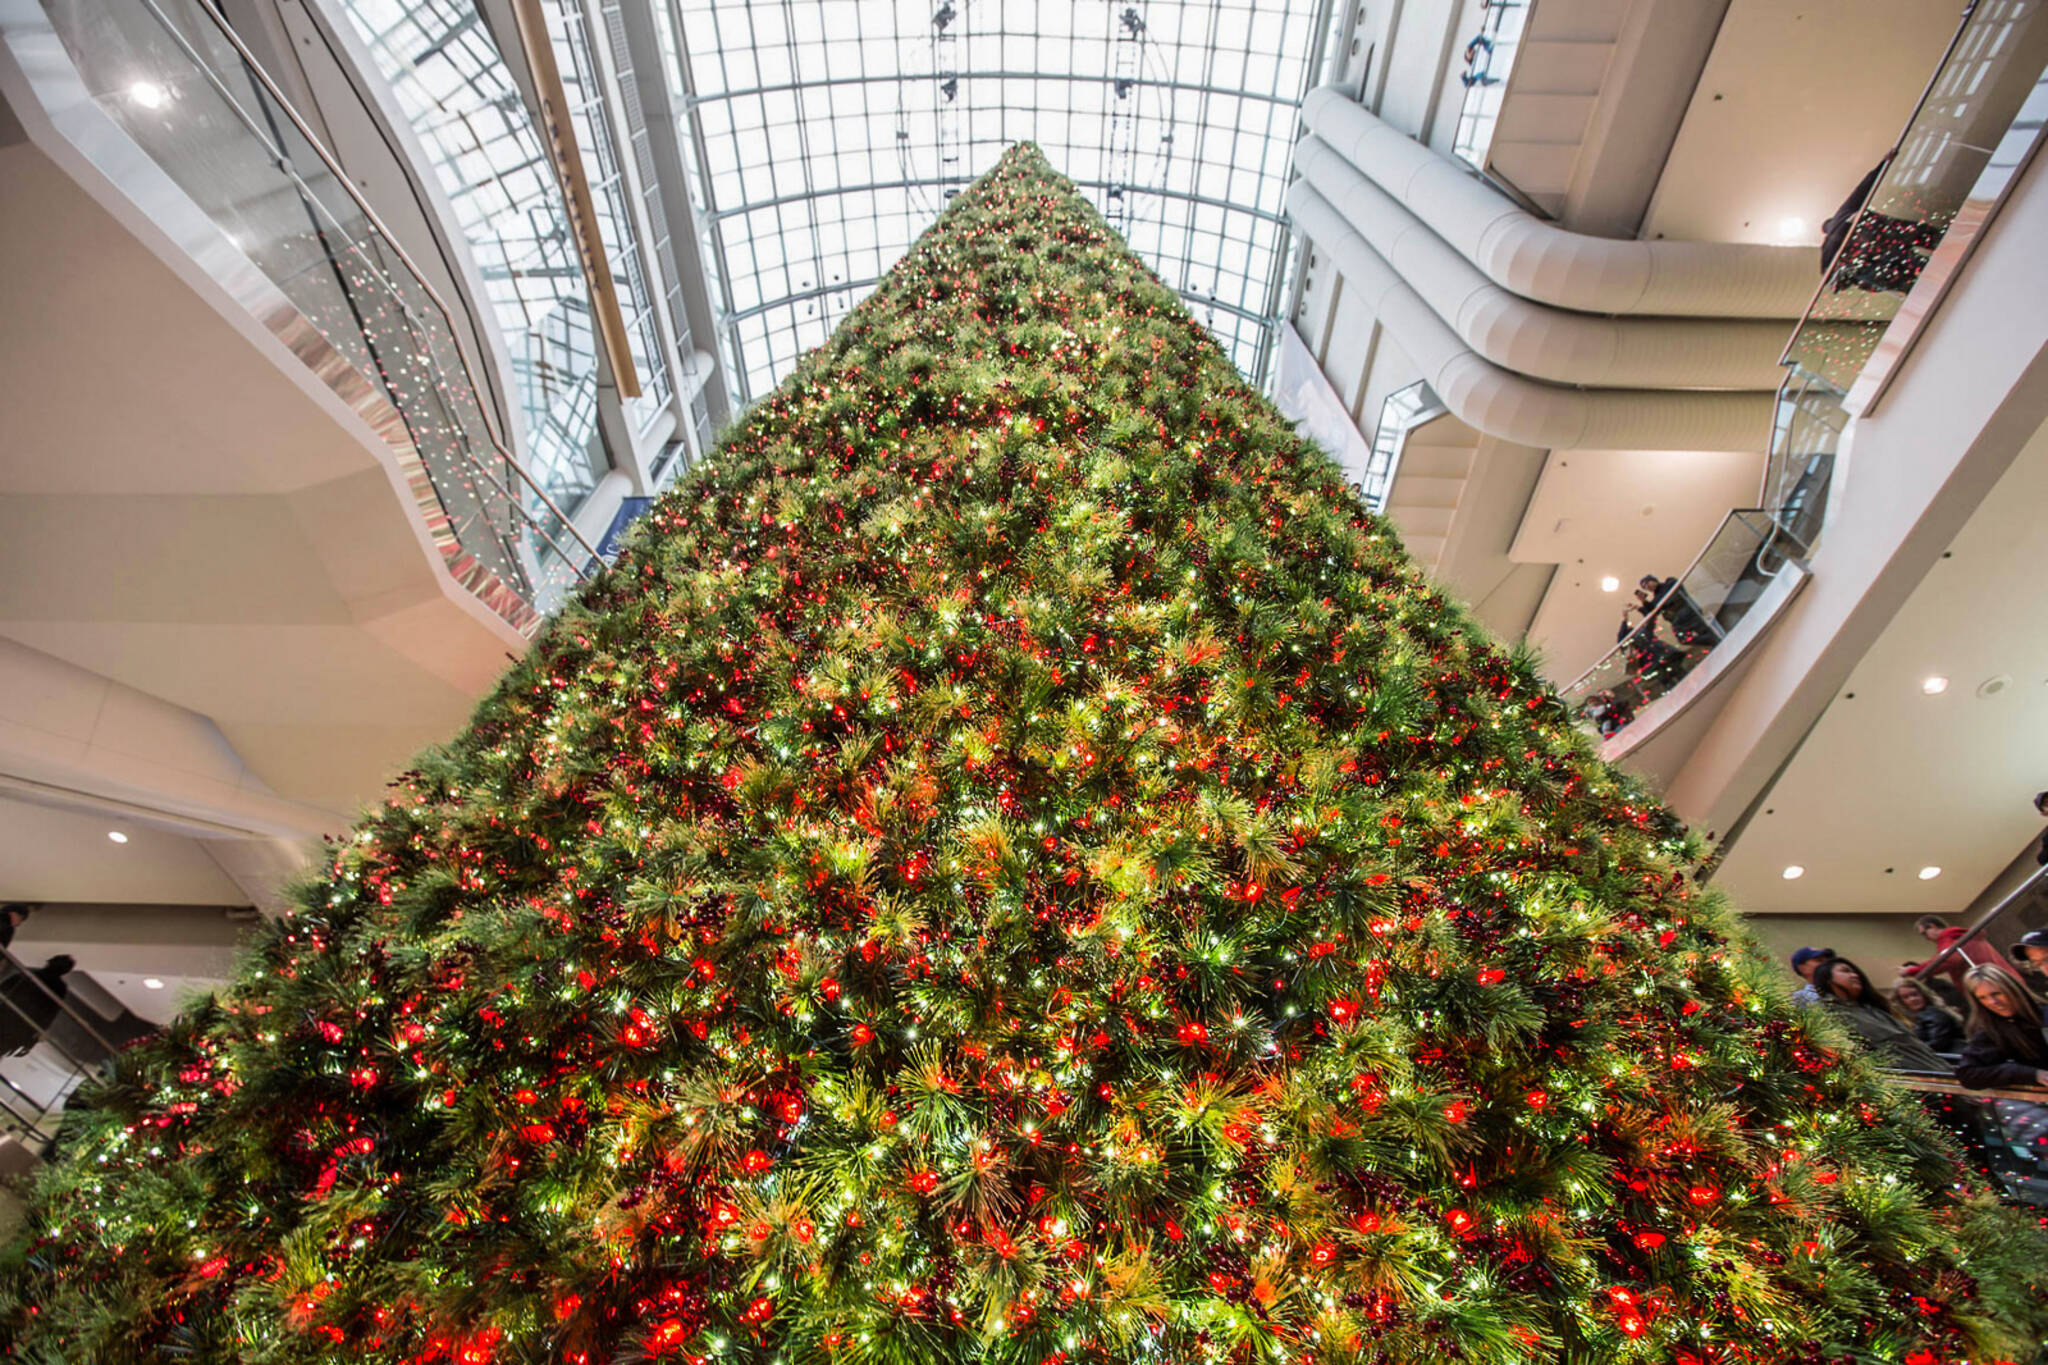 Toronto Is Getting An Epic 100 Foot Christmas Tree This Year